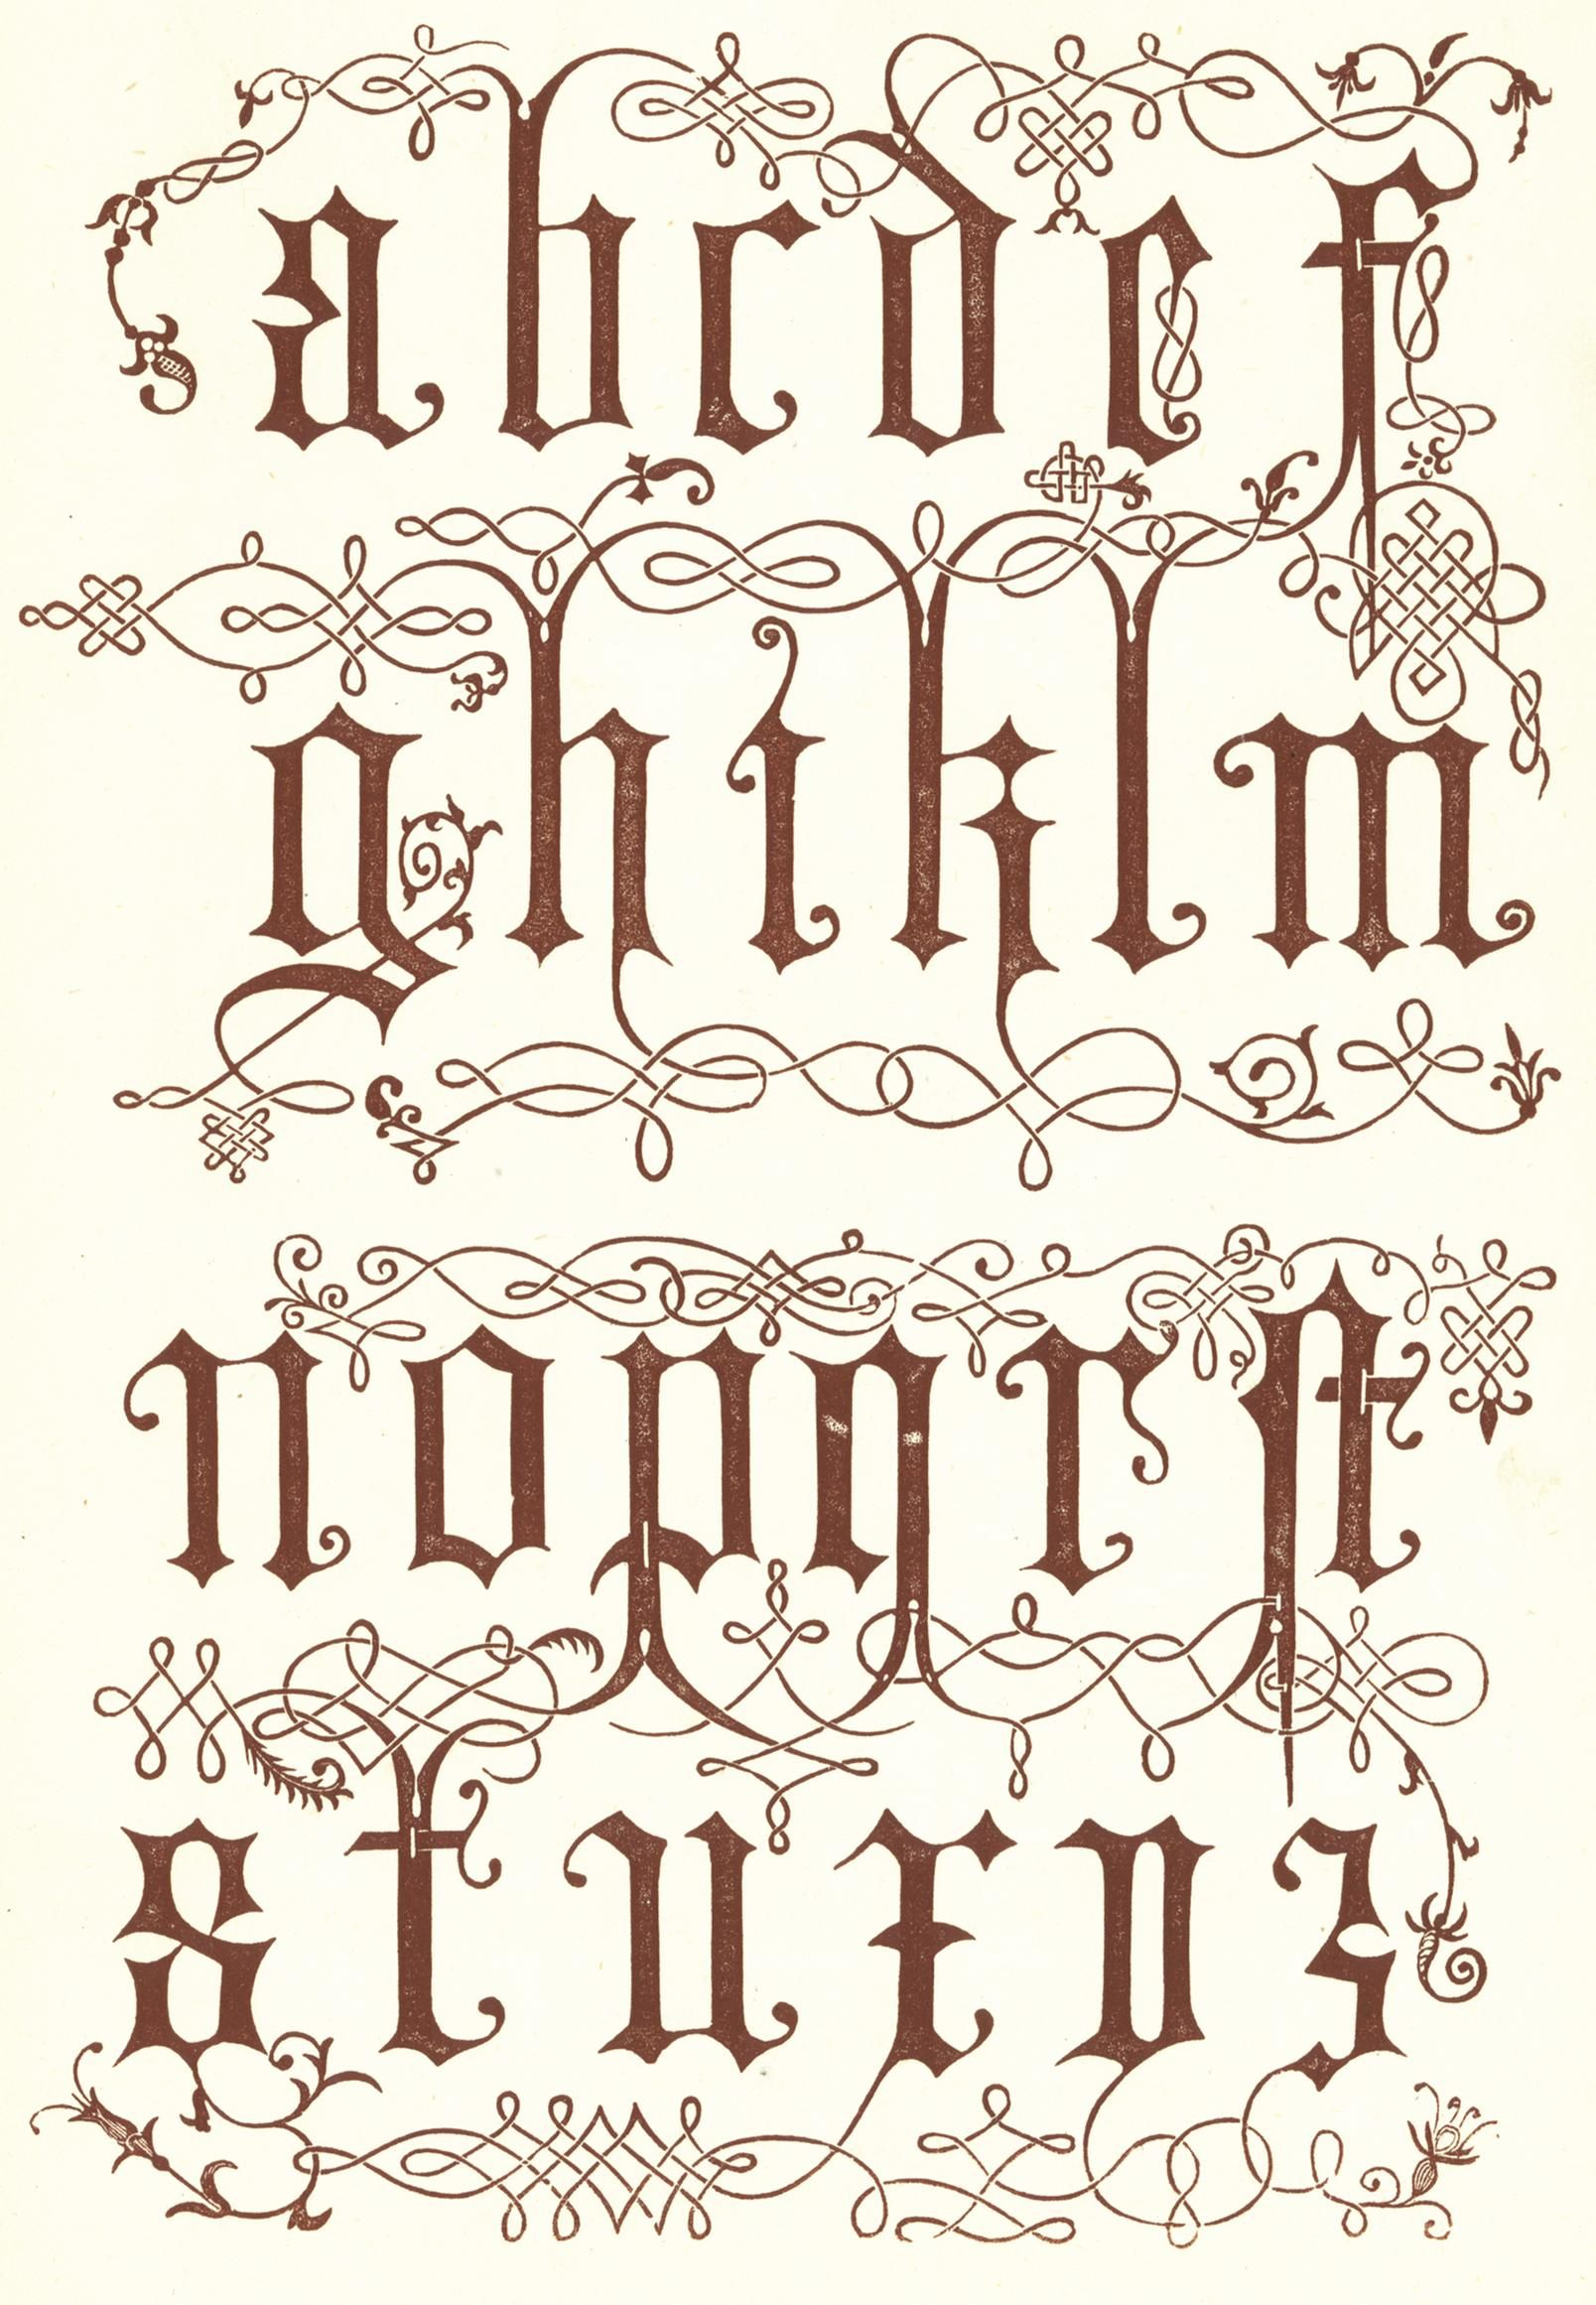 2917e1f5196 16th Century from Wood Engravings - details Graffiti Font